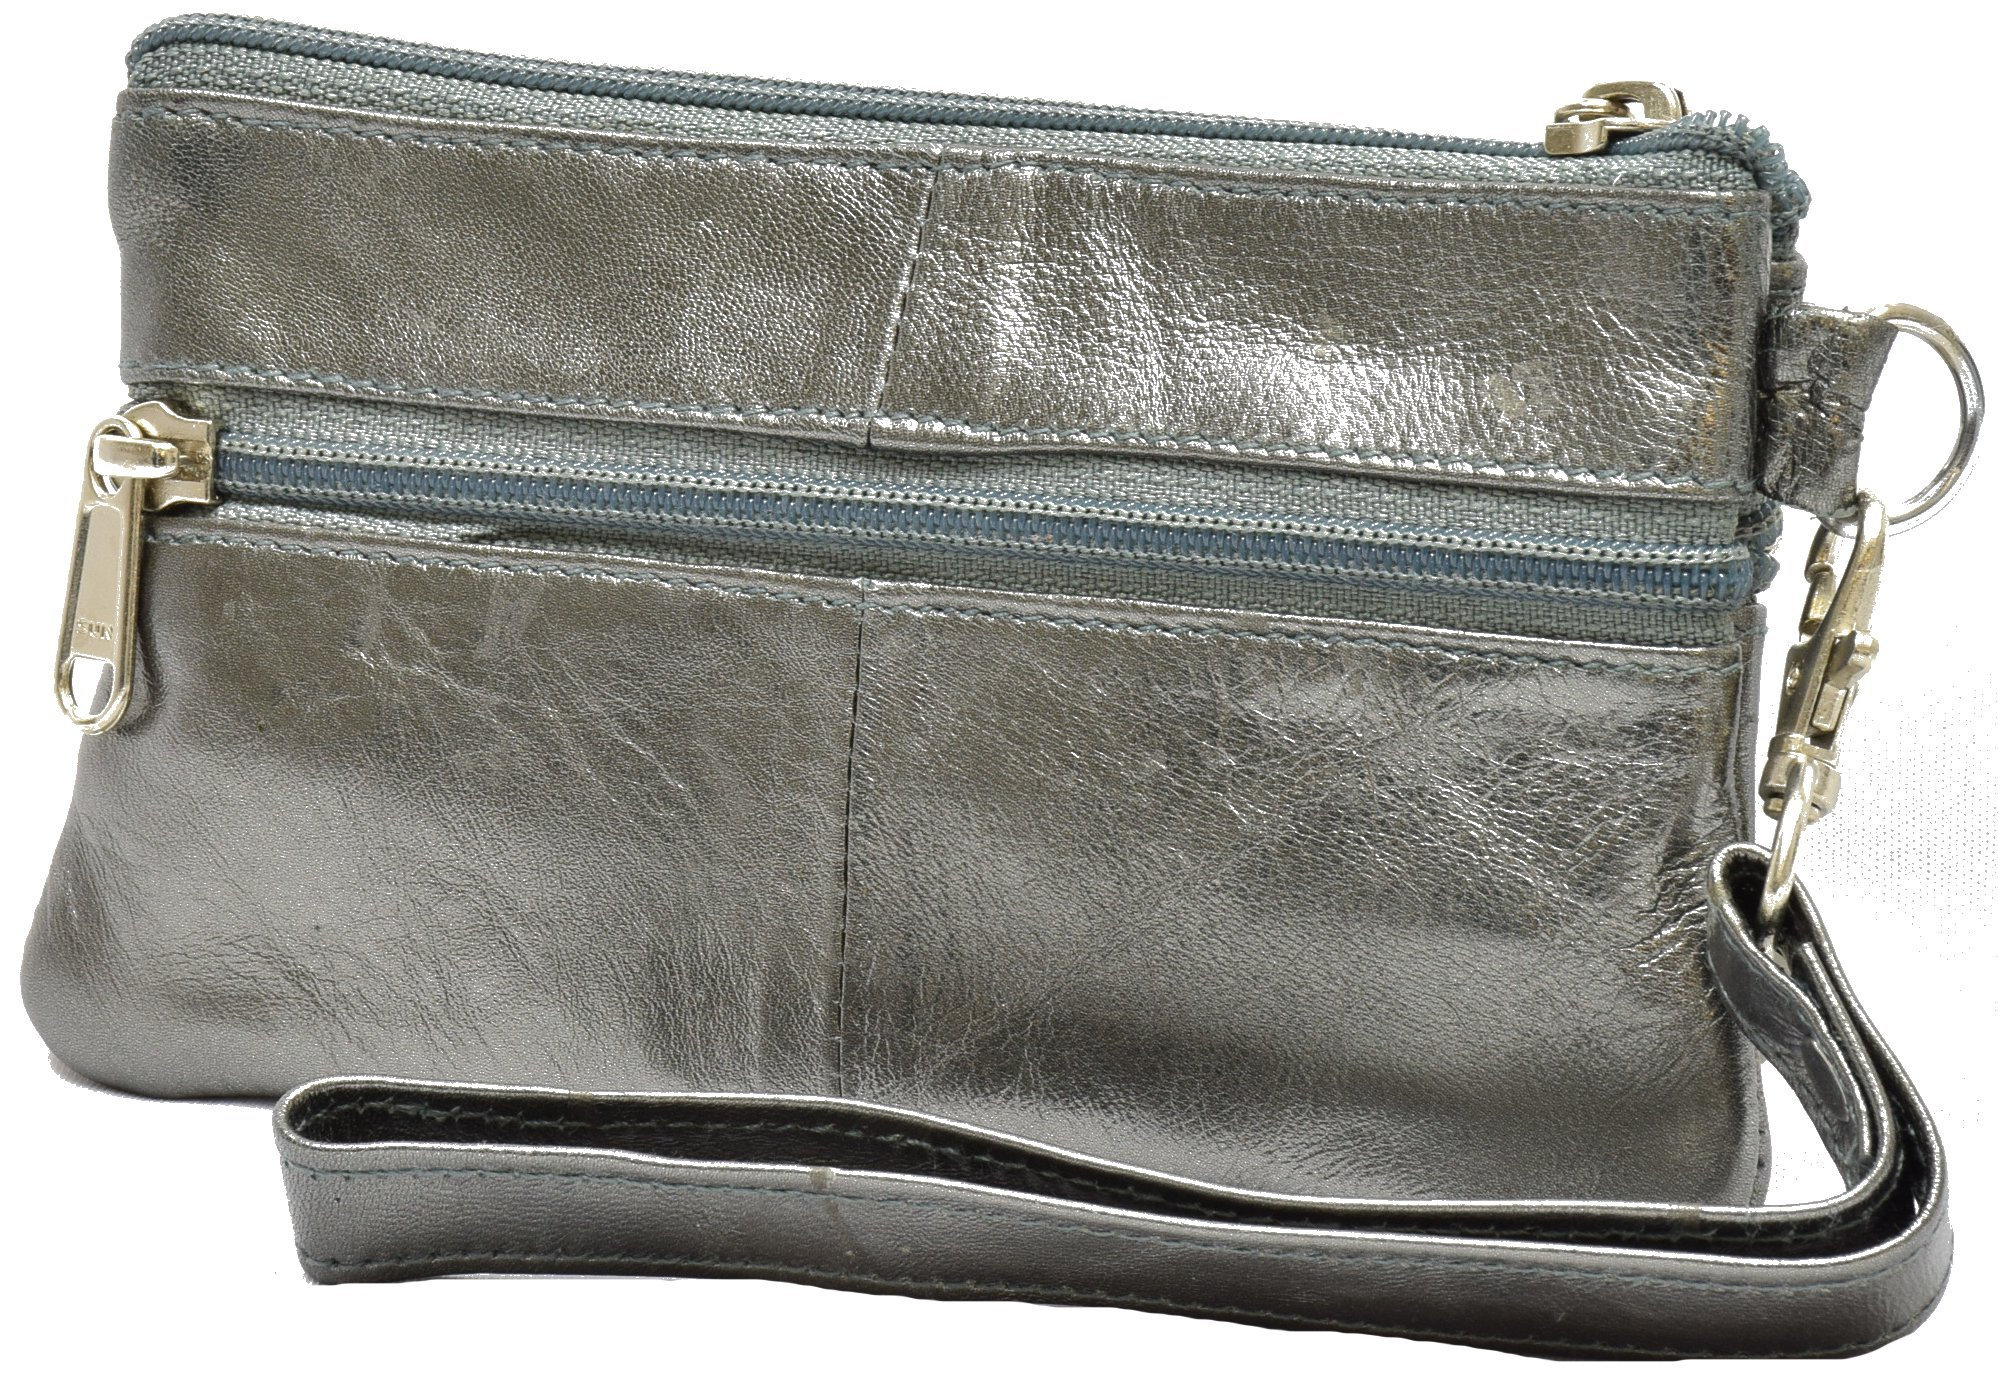 Handcrafted Genuine Leather Sunglasses Coin Purse Pouch (pewter)